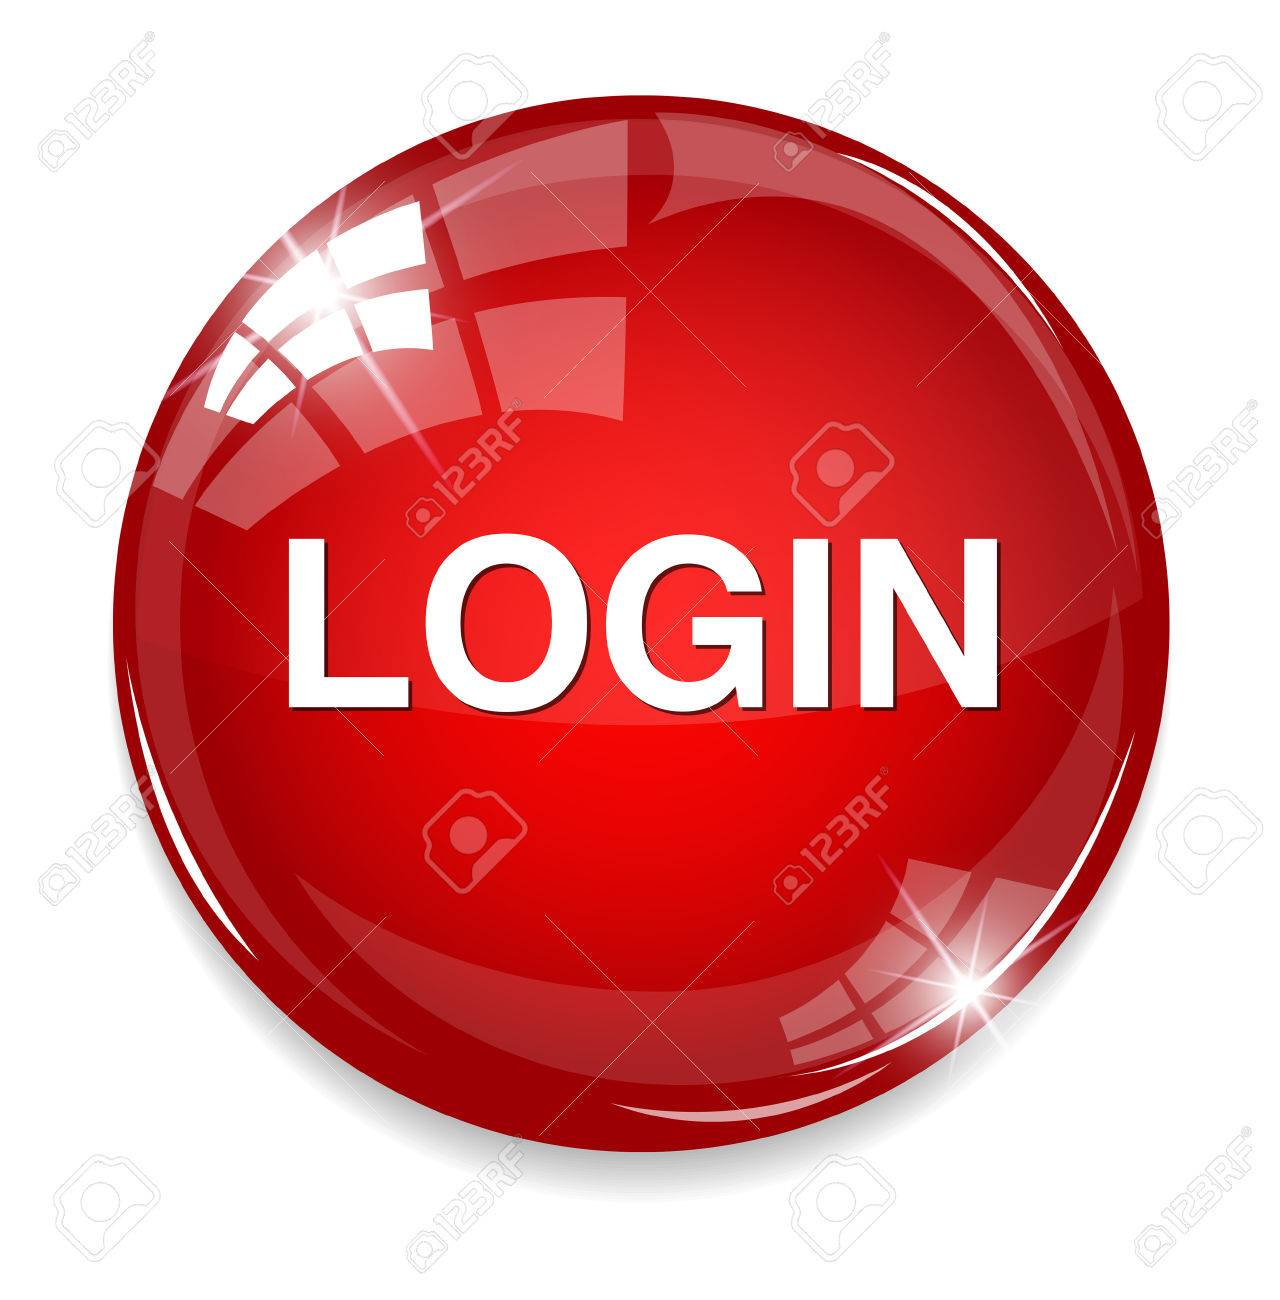 login icon royalty free cliparts vectors and stock illustration rh 123rf com